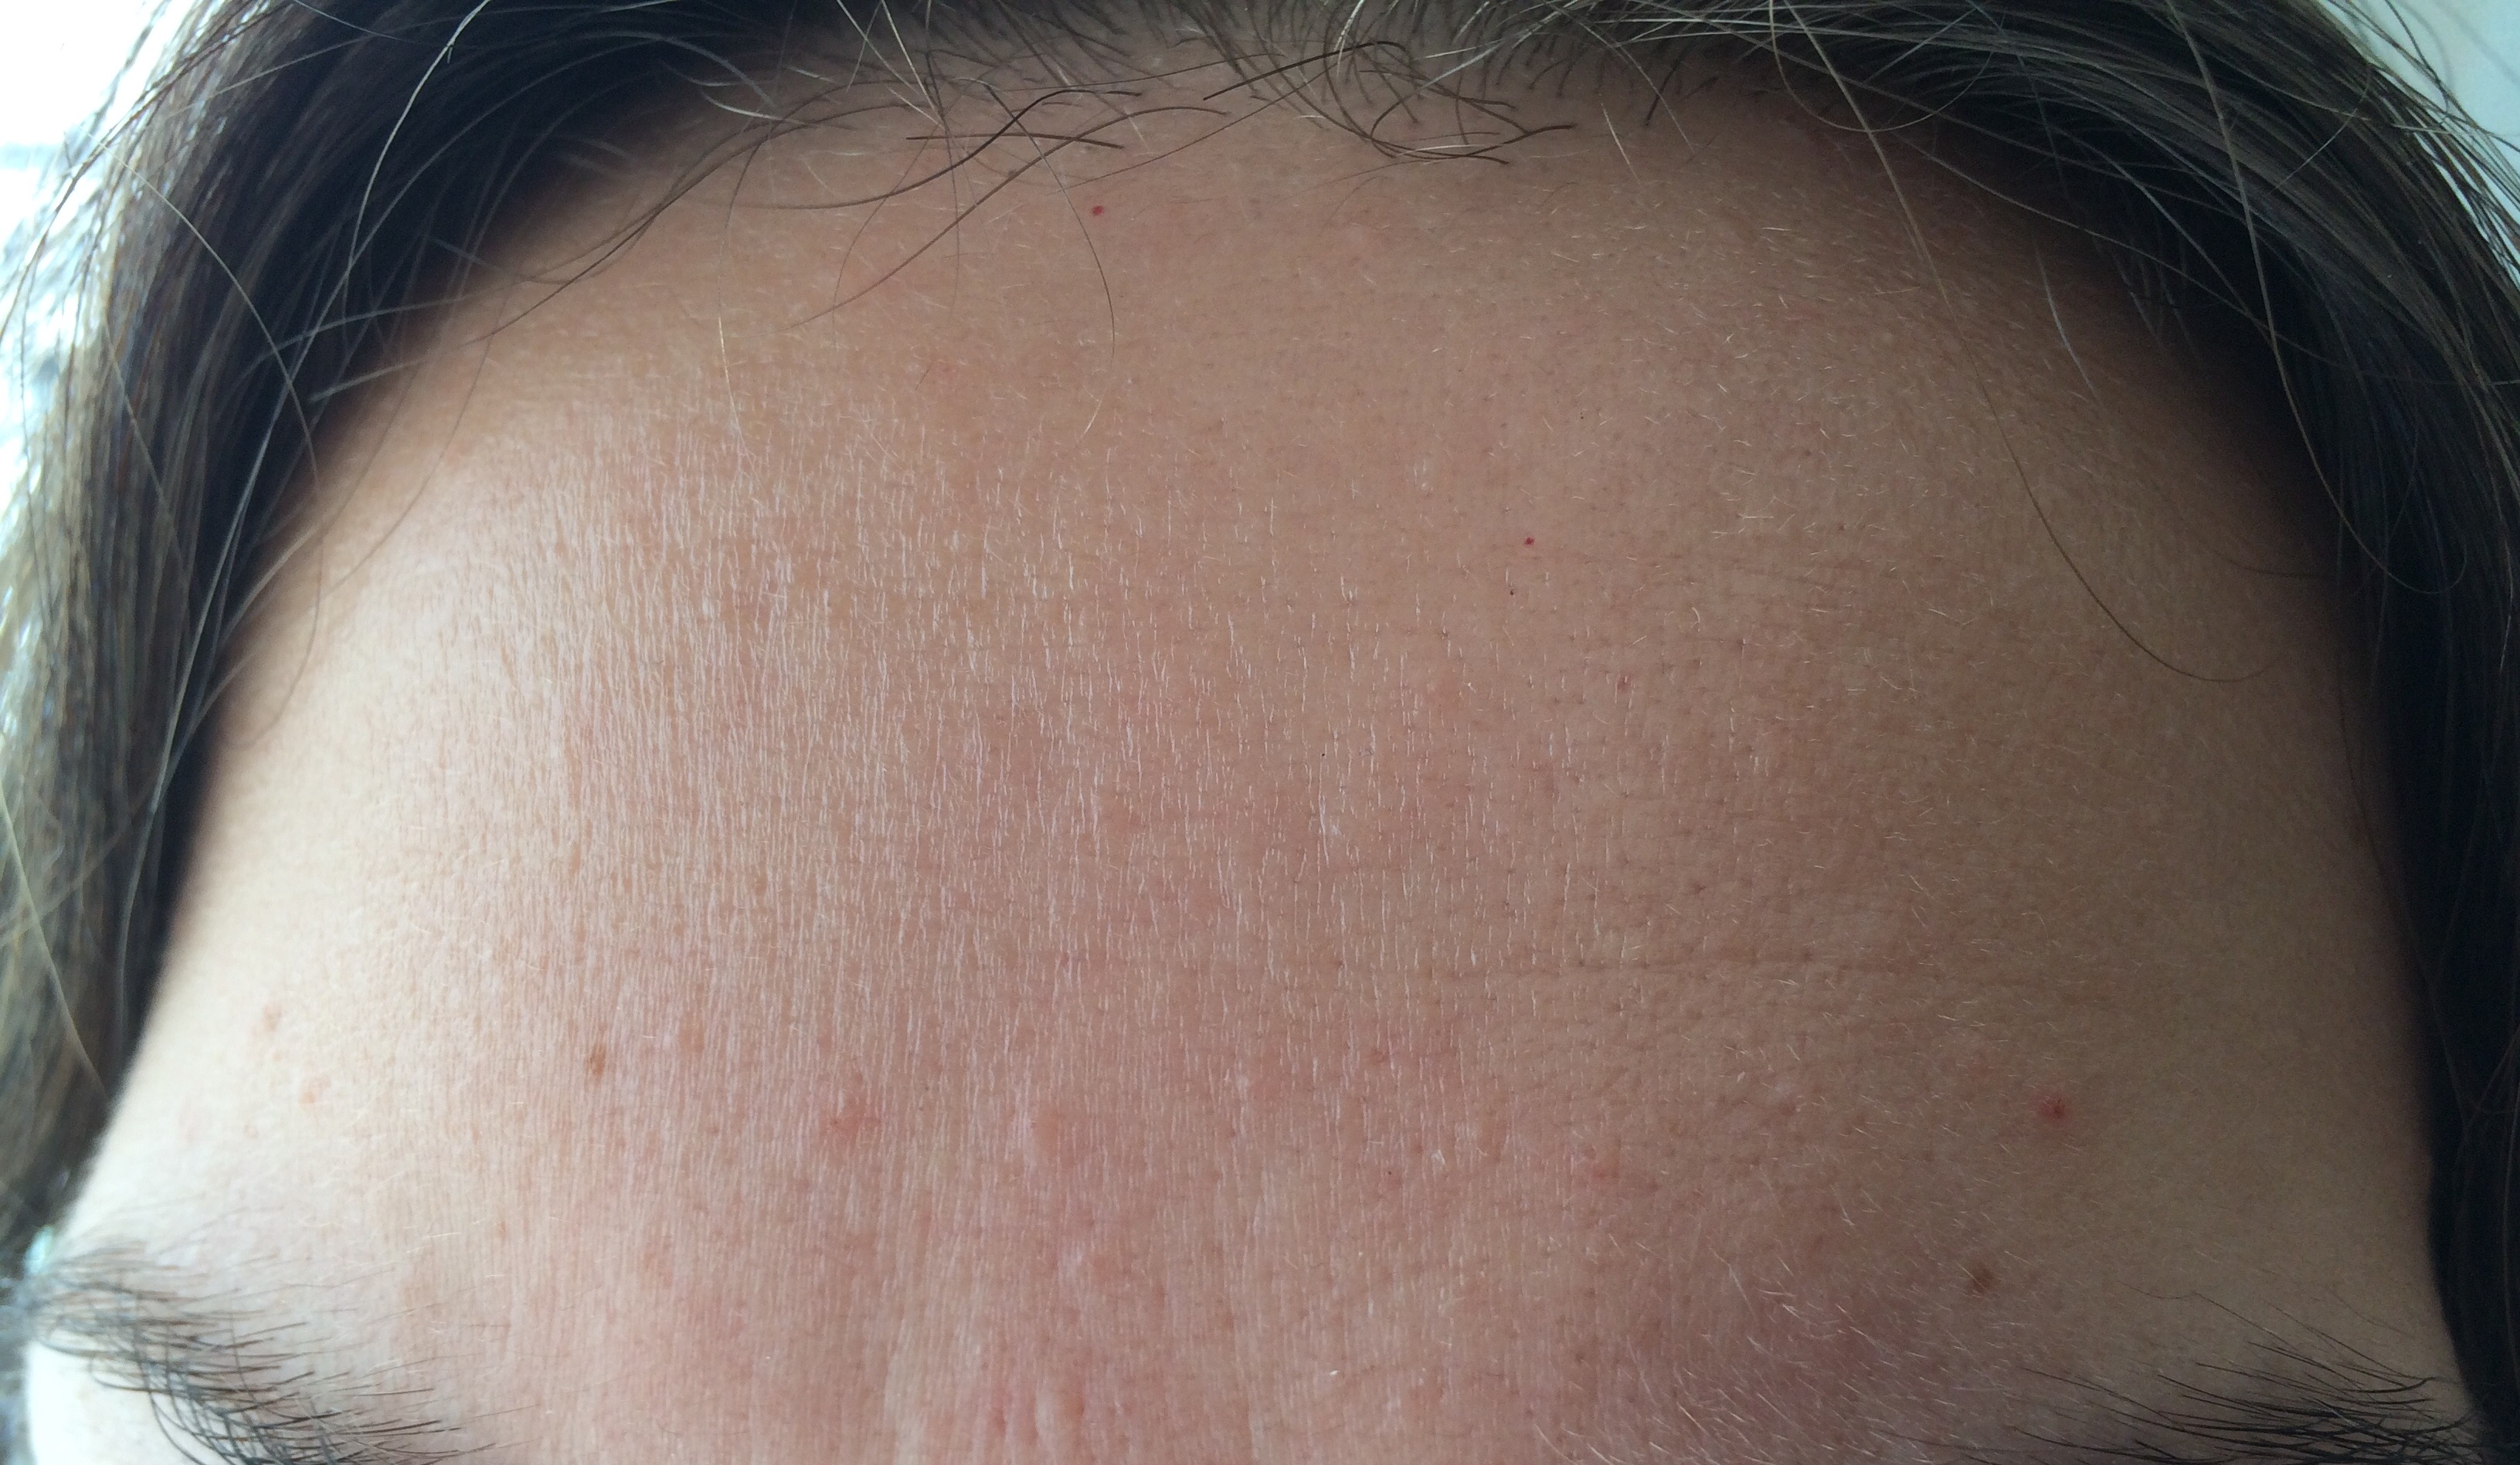 Small Flesh Colored Bumps on Forehead and Hairline - Adult ...